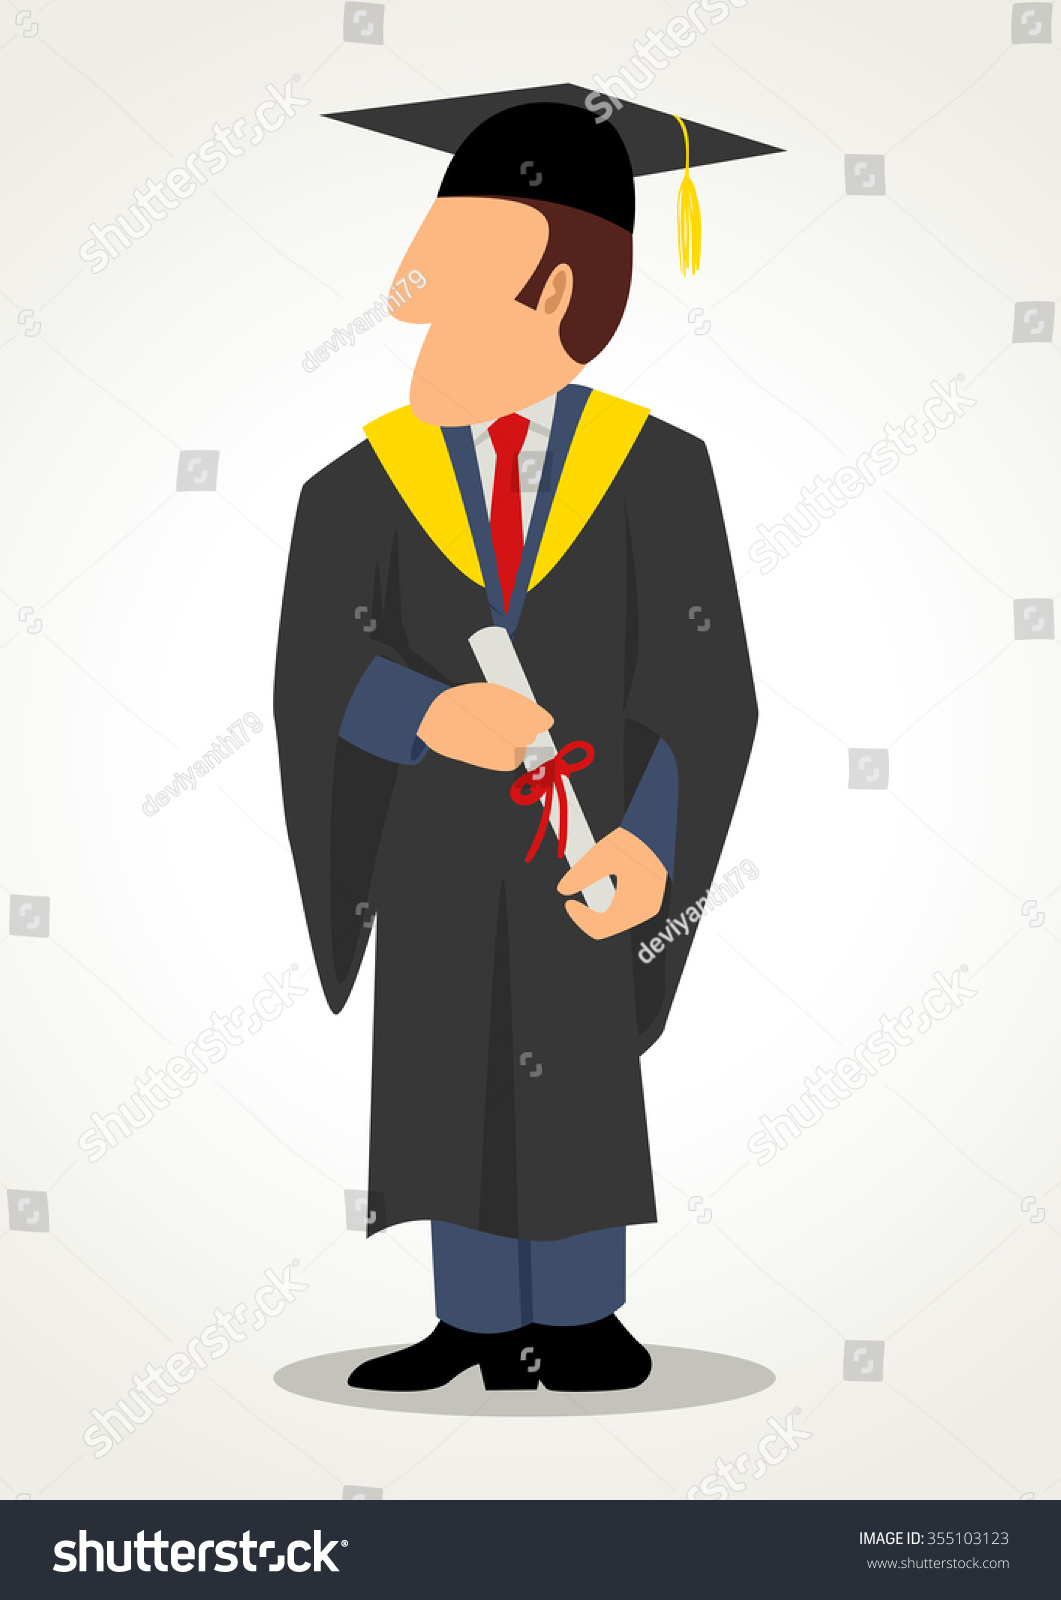 Simple Cartoon Male Graduation Gown Toga Stock Illustration ...